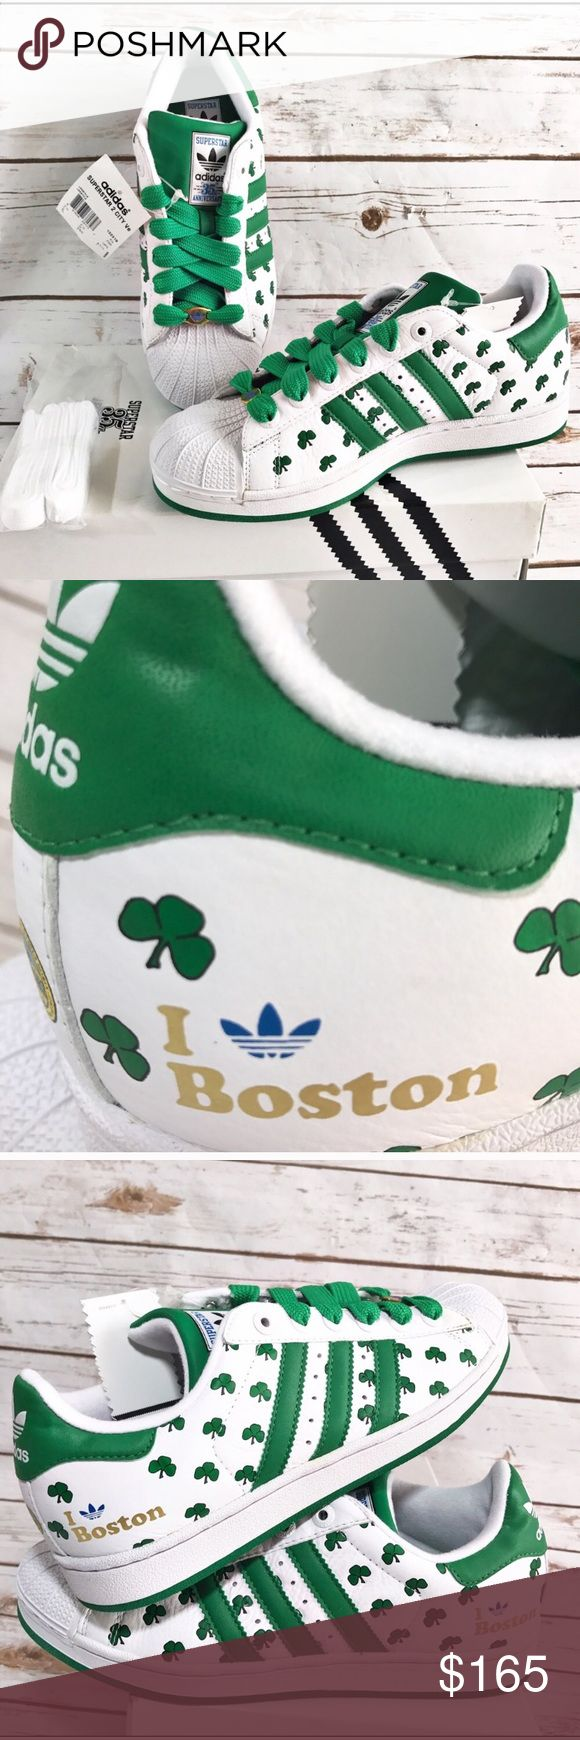 ADIDAS SUPERSTAR 35TH ANNIVERSARY EDITION BOSTON ADIDAS SUPERSTAR 35TH ANNIVERSARY EDITION RARE 26 Cities Boston # 132319 Love this pair . SHAMROCKS SHELL TOE Classic Adidas with extra love . WHITE LACES also included. NWT IN BOX . These are a collectors edition of classic Adidas cross listed since they can certainly be unisex . Men's size 8 which according to runners world sizing chart equals a women's 9.5 36th Anniversary collectors edition 🌑 adidas Shoes Sneakers